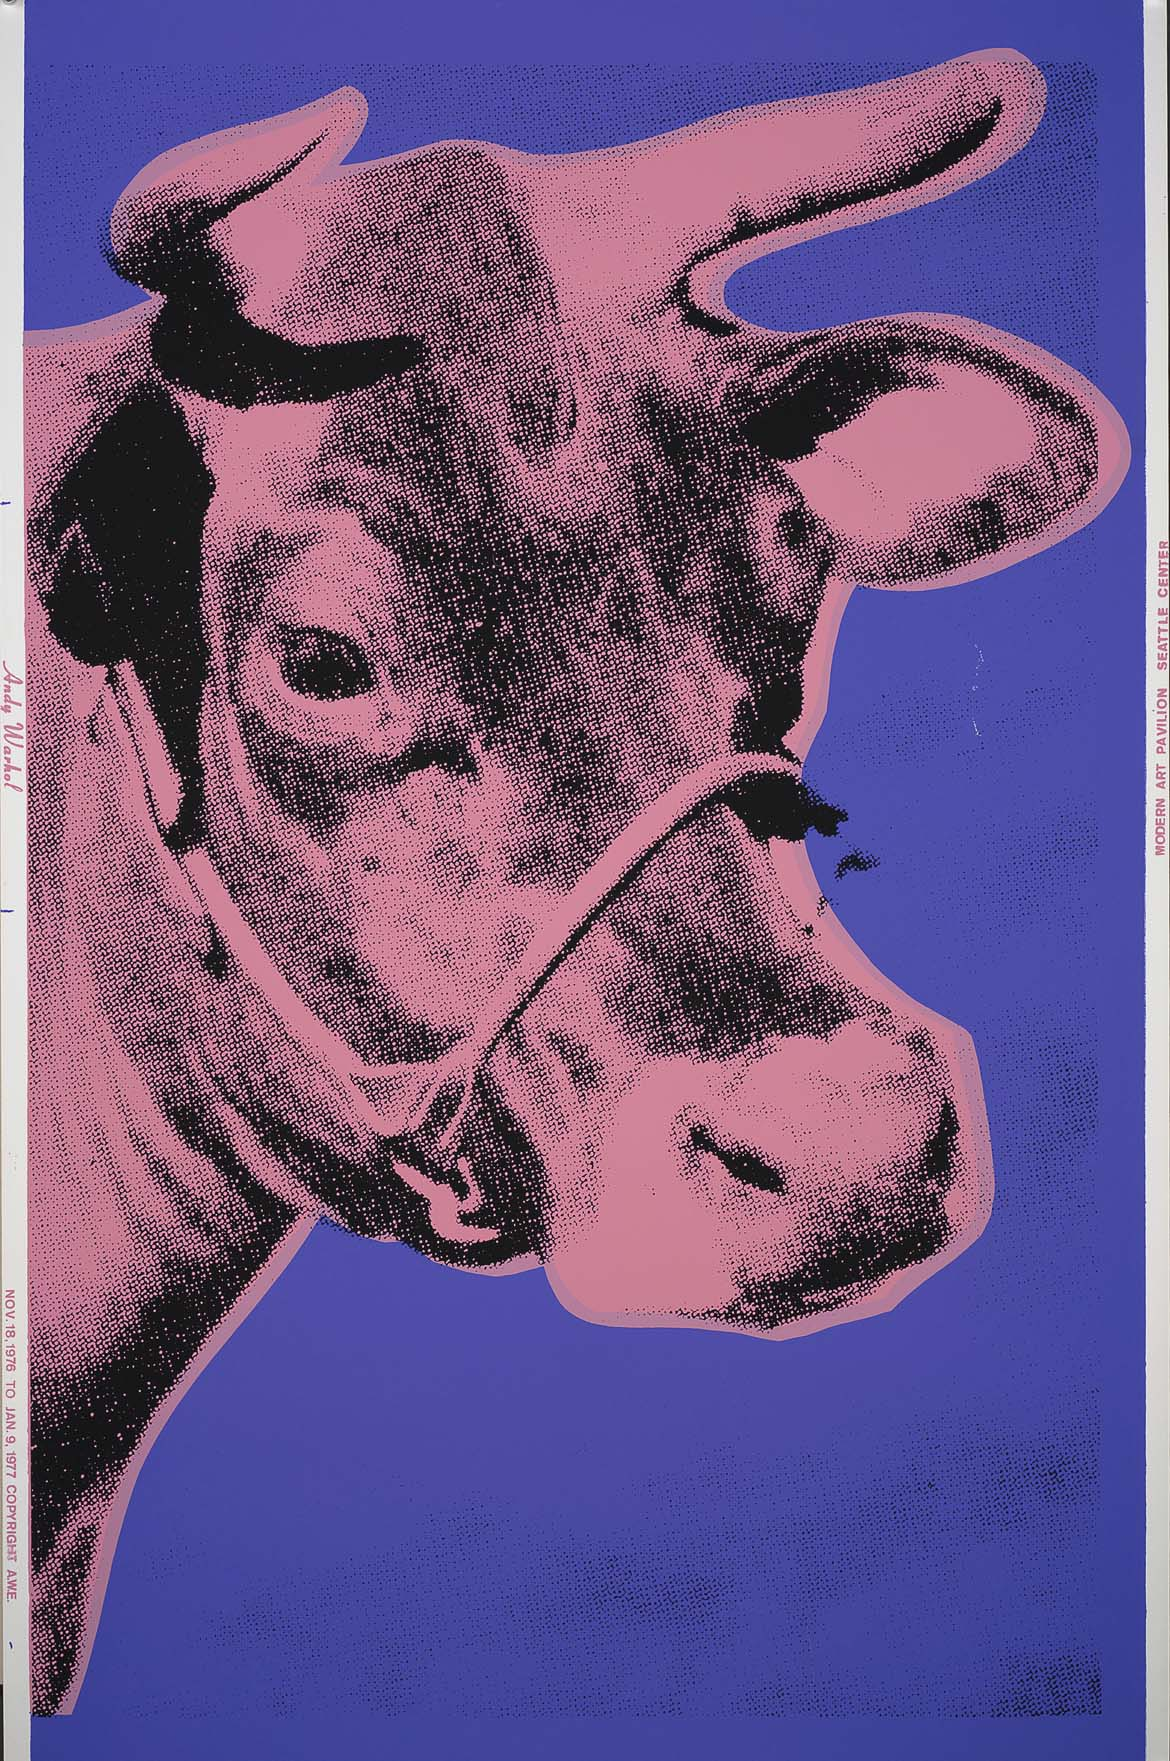 Cow 12A By Andy Warhol